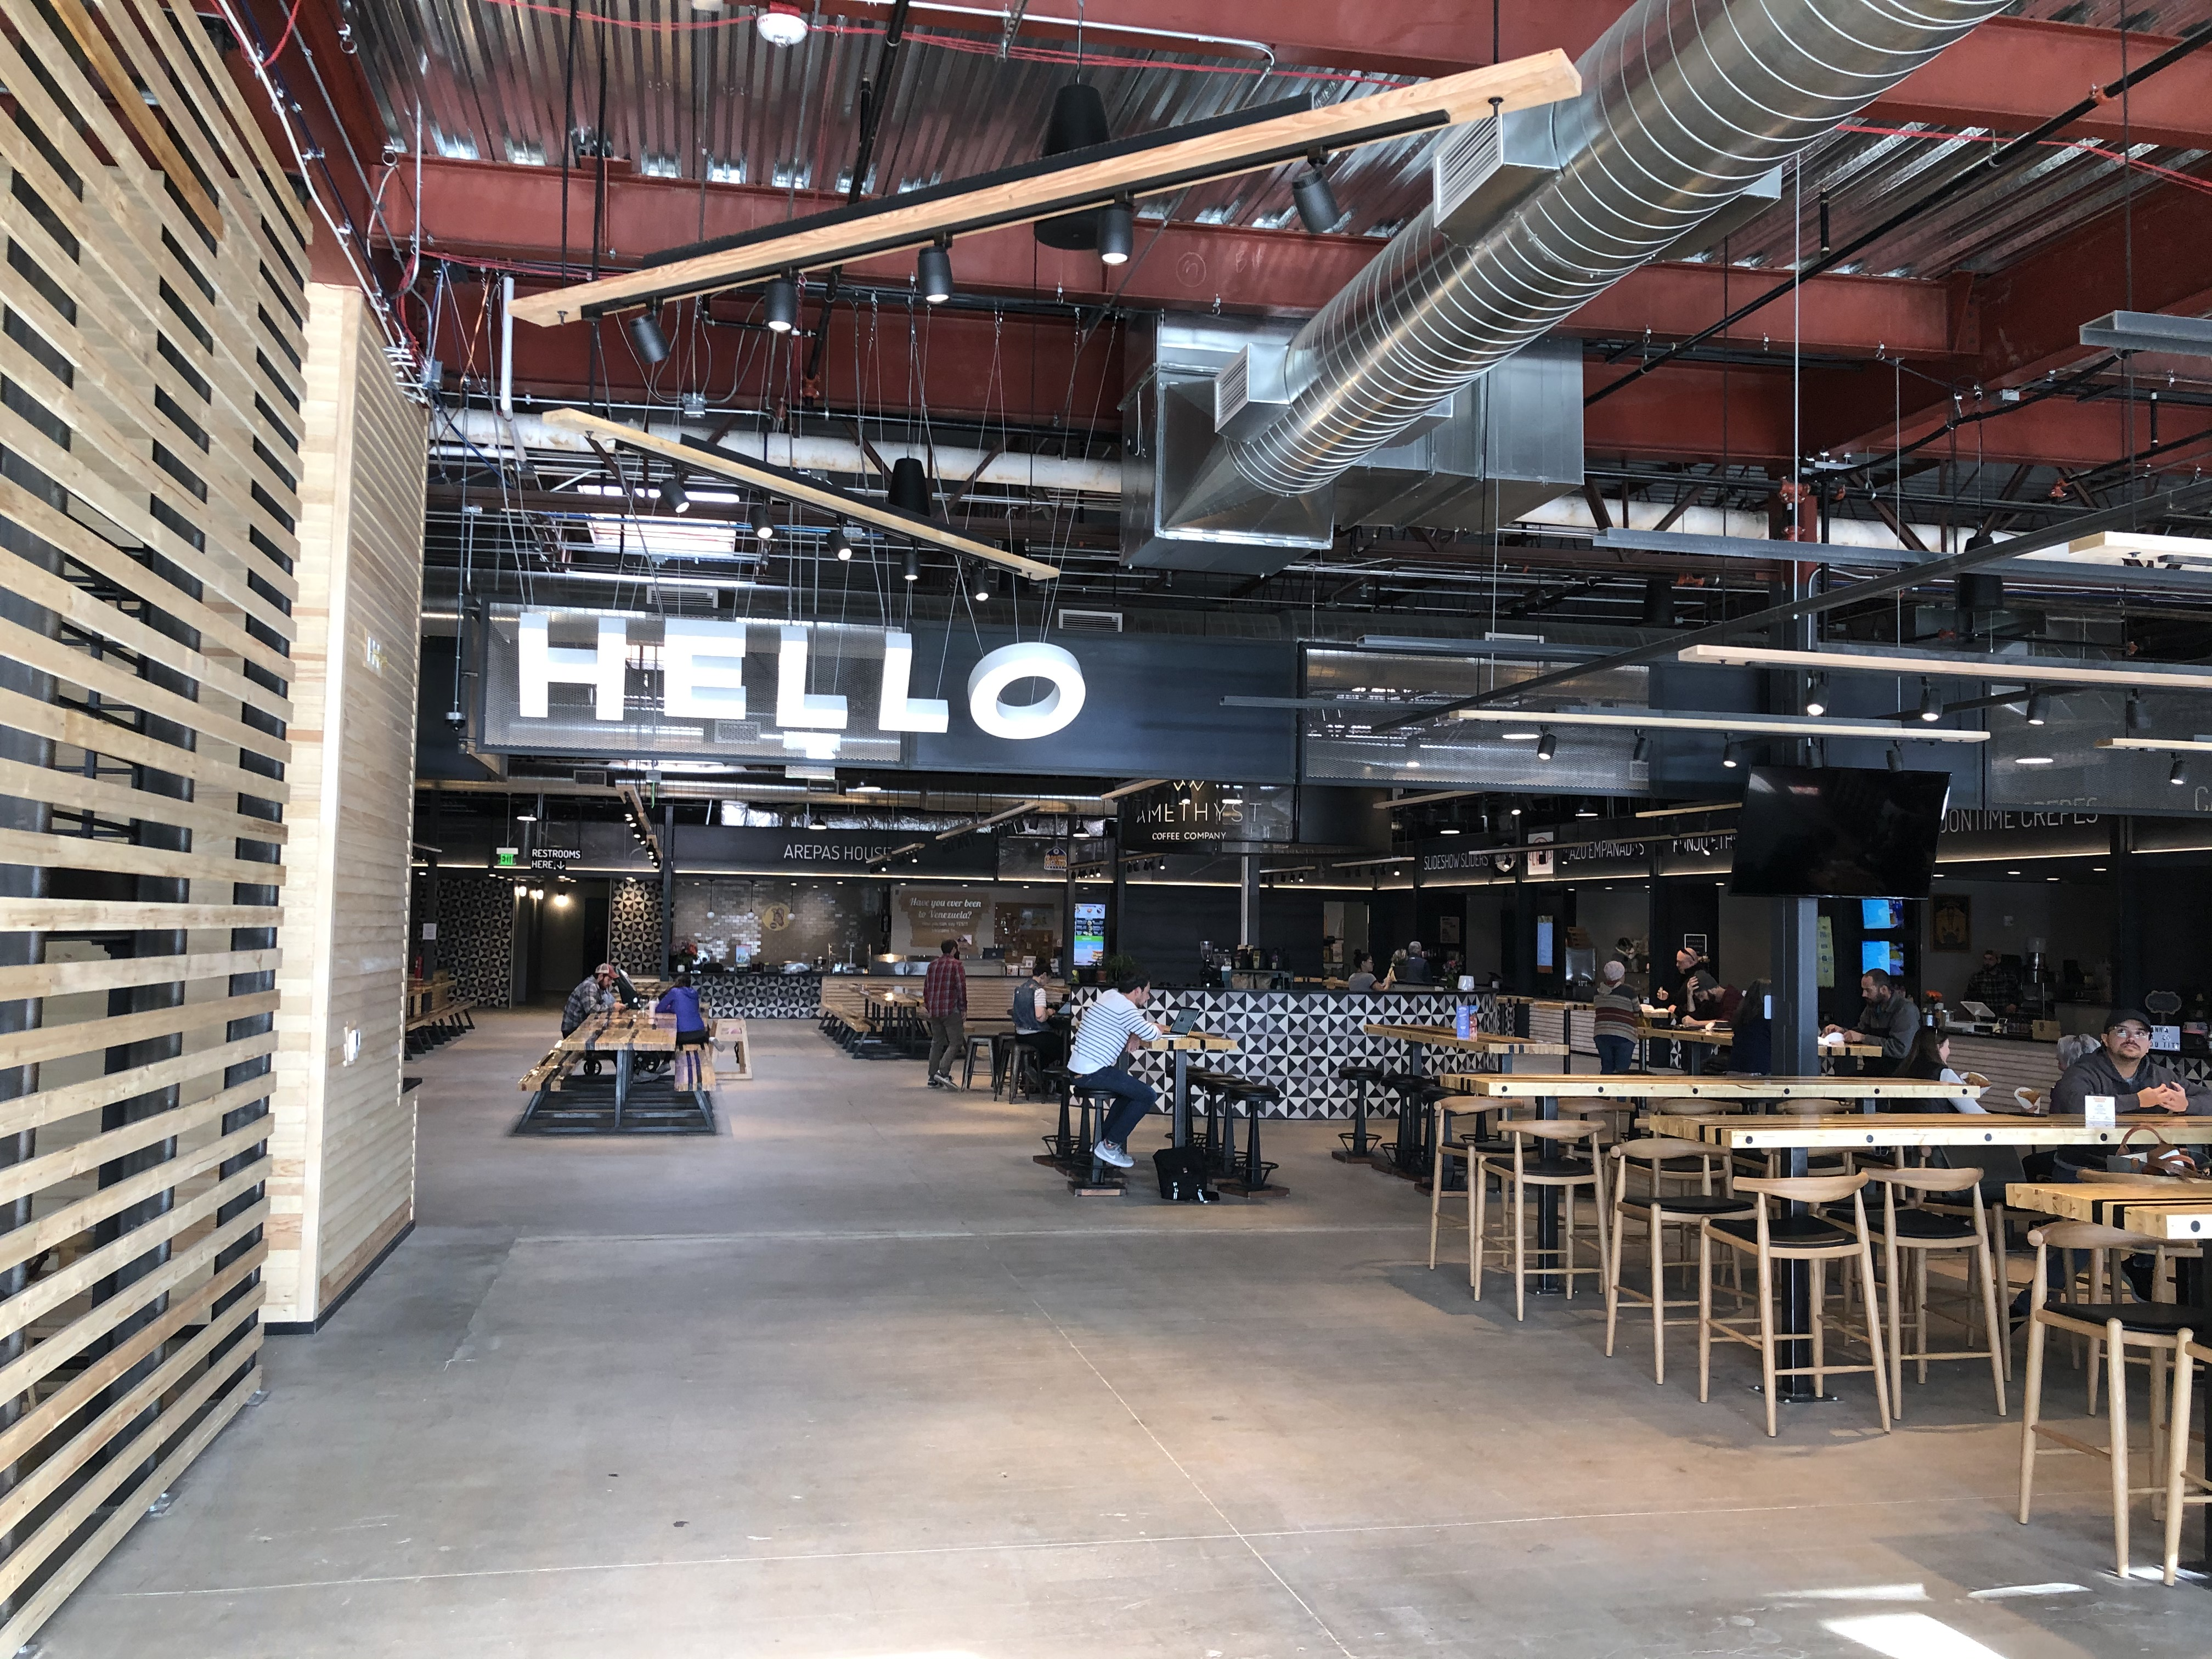 Look Inside Edgewater's New Mural-Filled Food Hall With an Industrial Feel